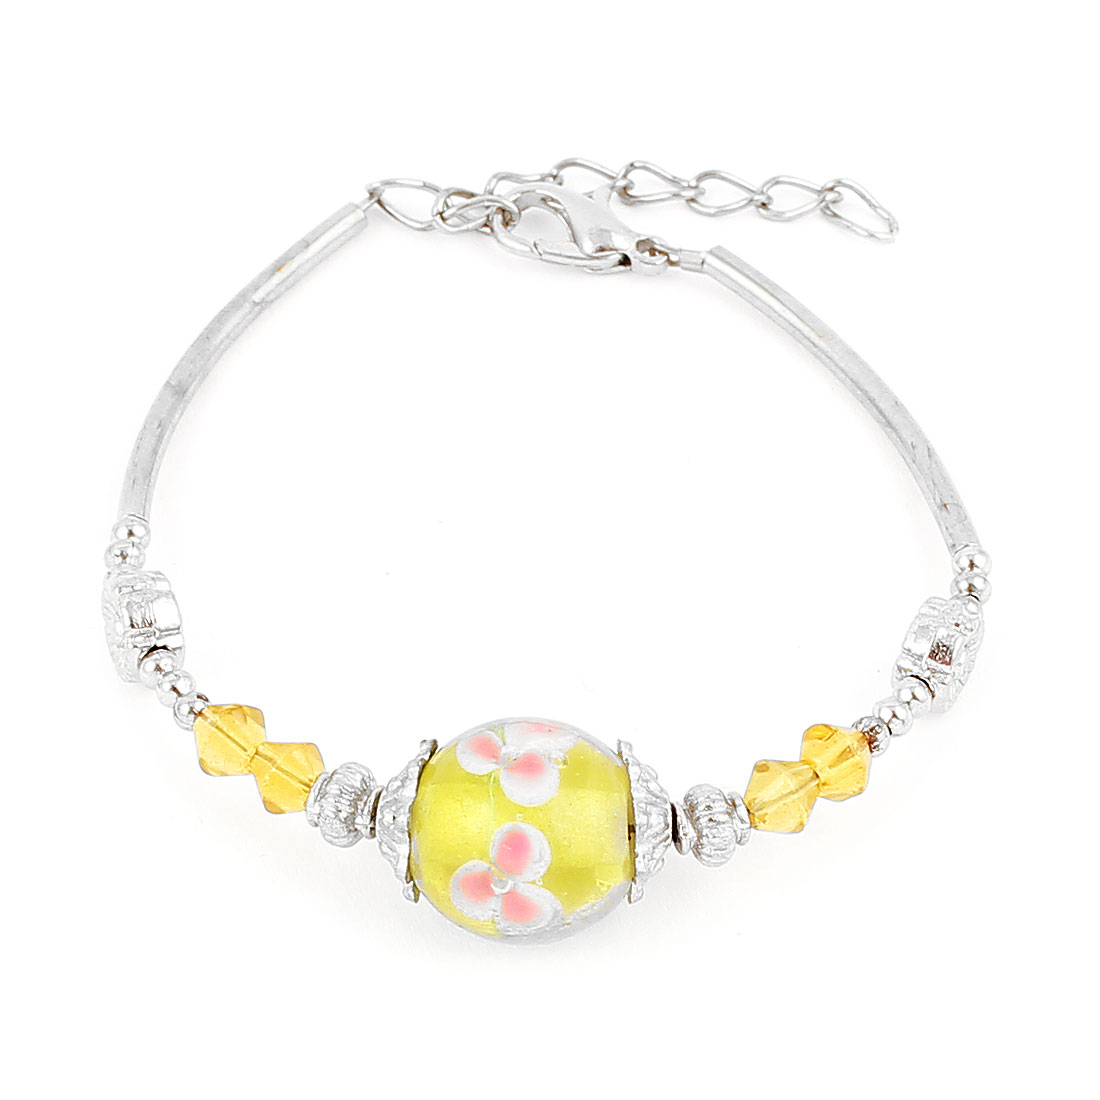 Lady Lobster Clasp Link Round Bead Accent Wrist Decoration Bracelet Bangle Yellow